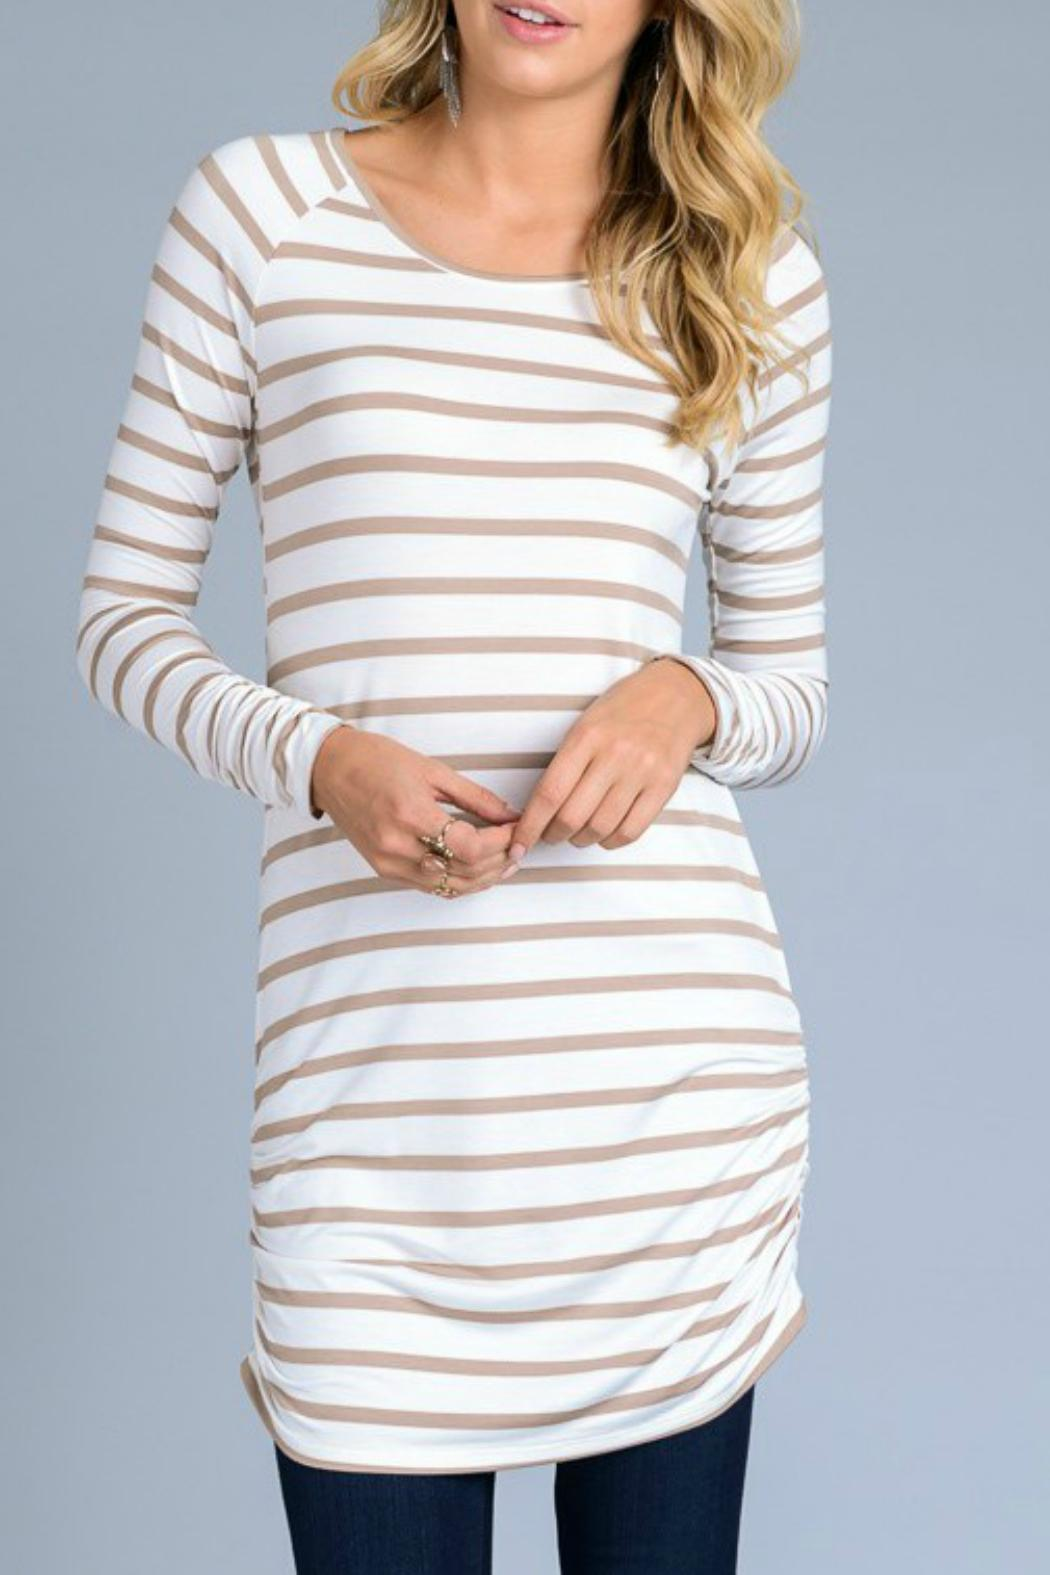 e509cddb189 Inance Striped Tunic Top from Florida — Shoptiques